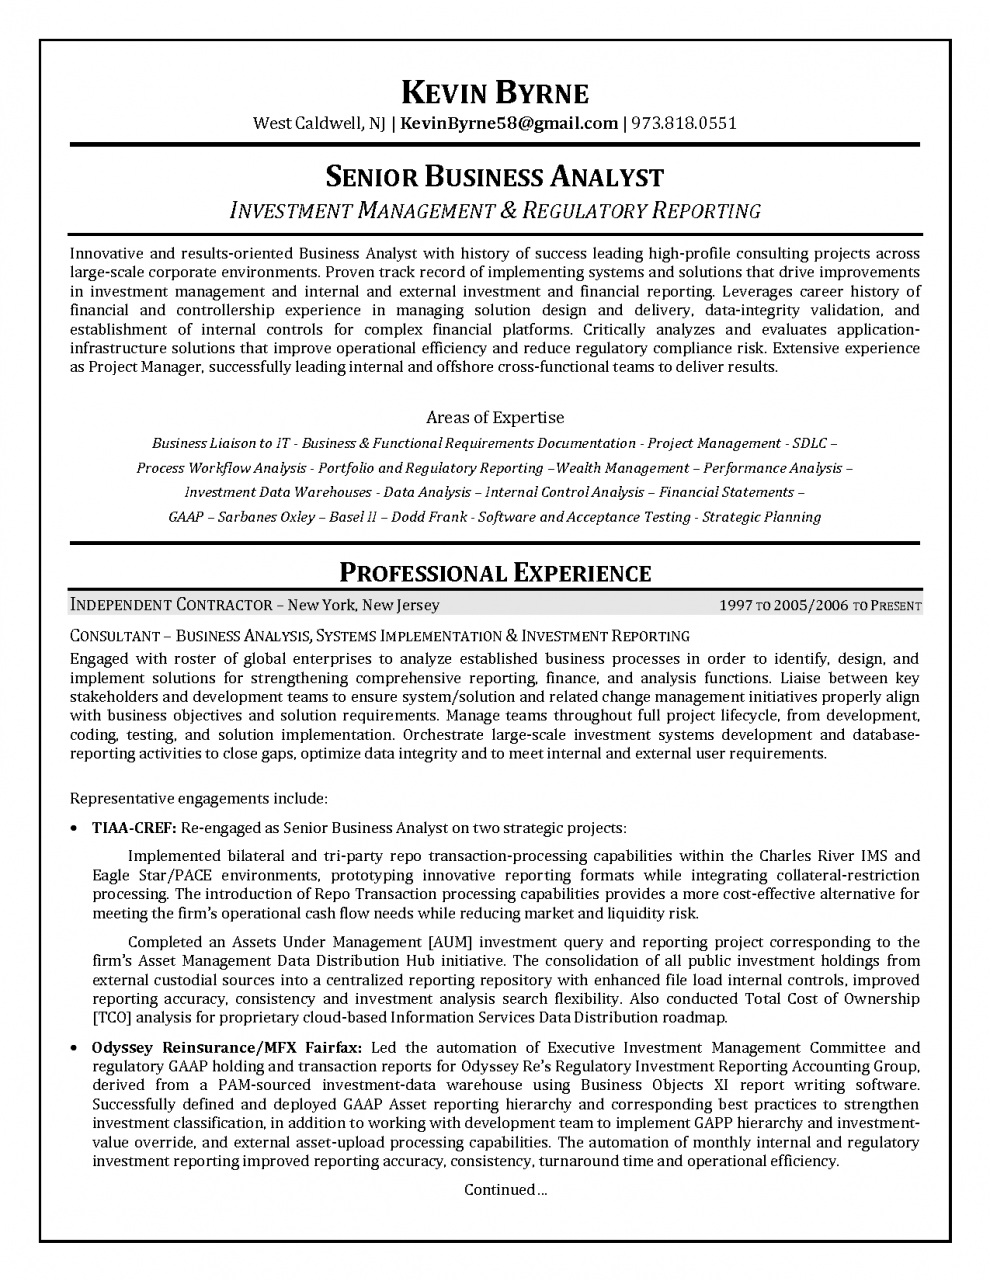 Resume. Senior Business Analyst Resume Format Business Analyst Senior Resume  Workbloom 135933271 Sample Resume For  Investment Analyst Resume